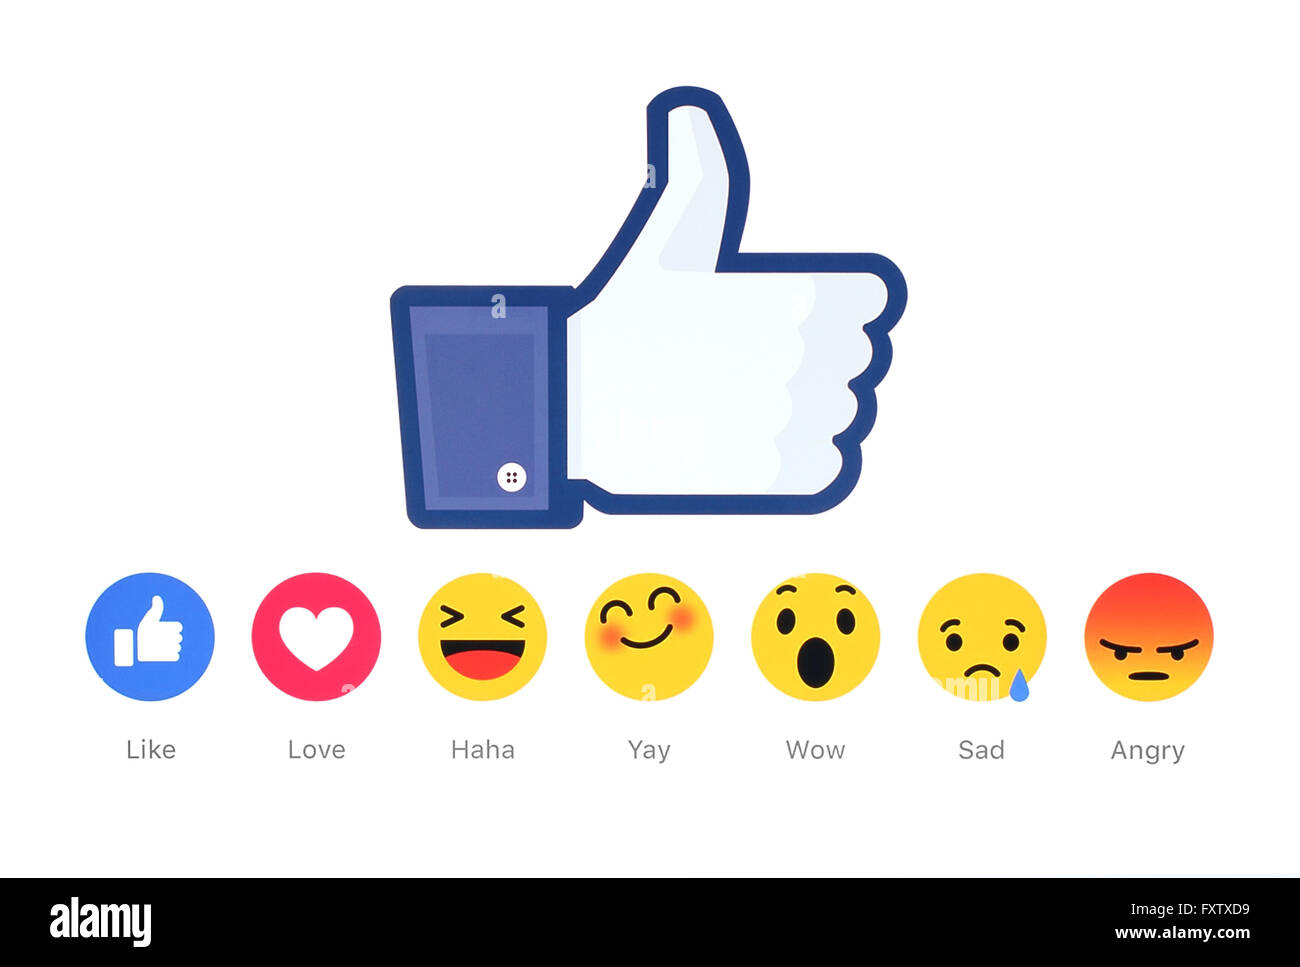 New Facebook like button 6 Empathetic Emoji Reactions printed on white paper. - Stock Image